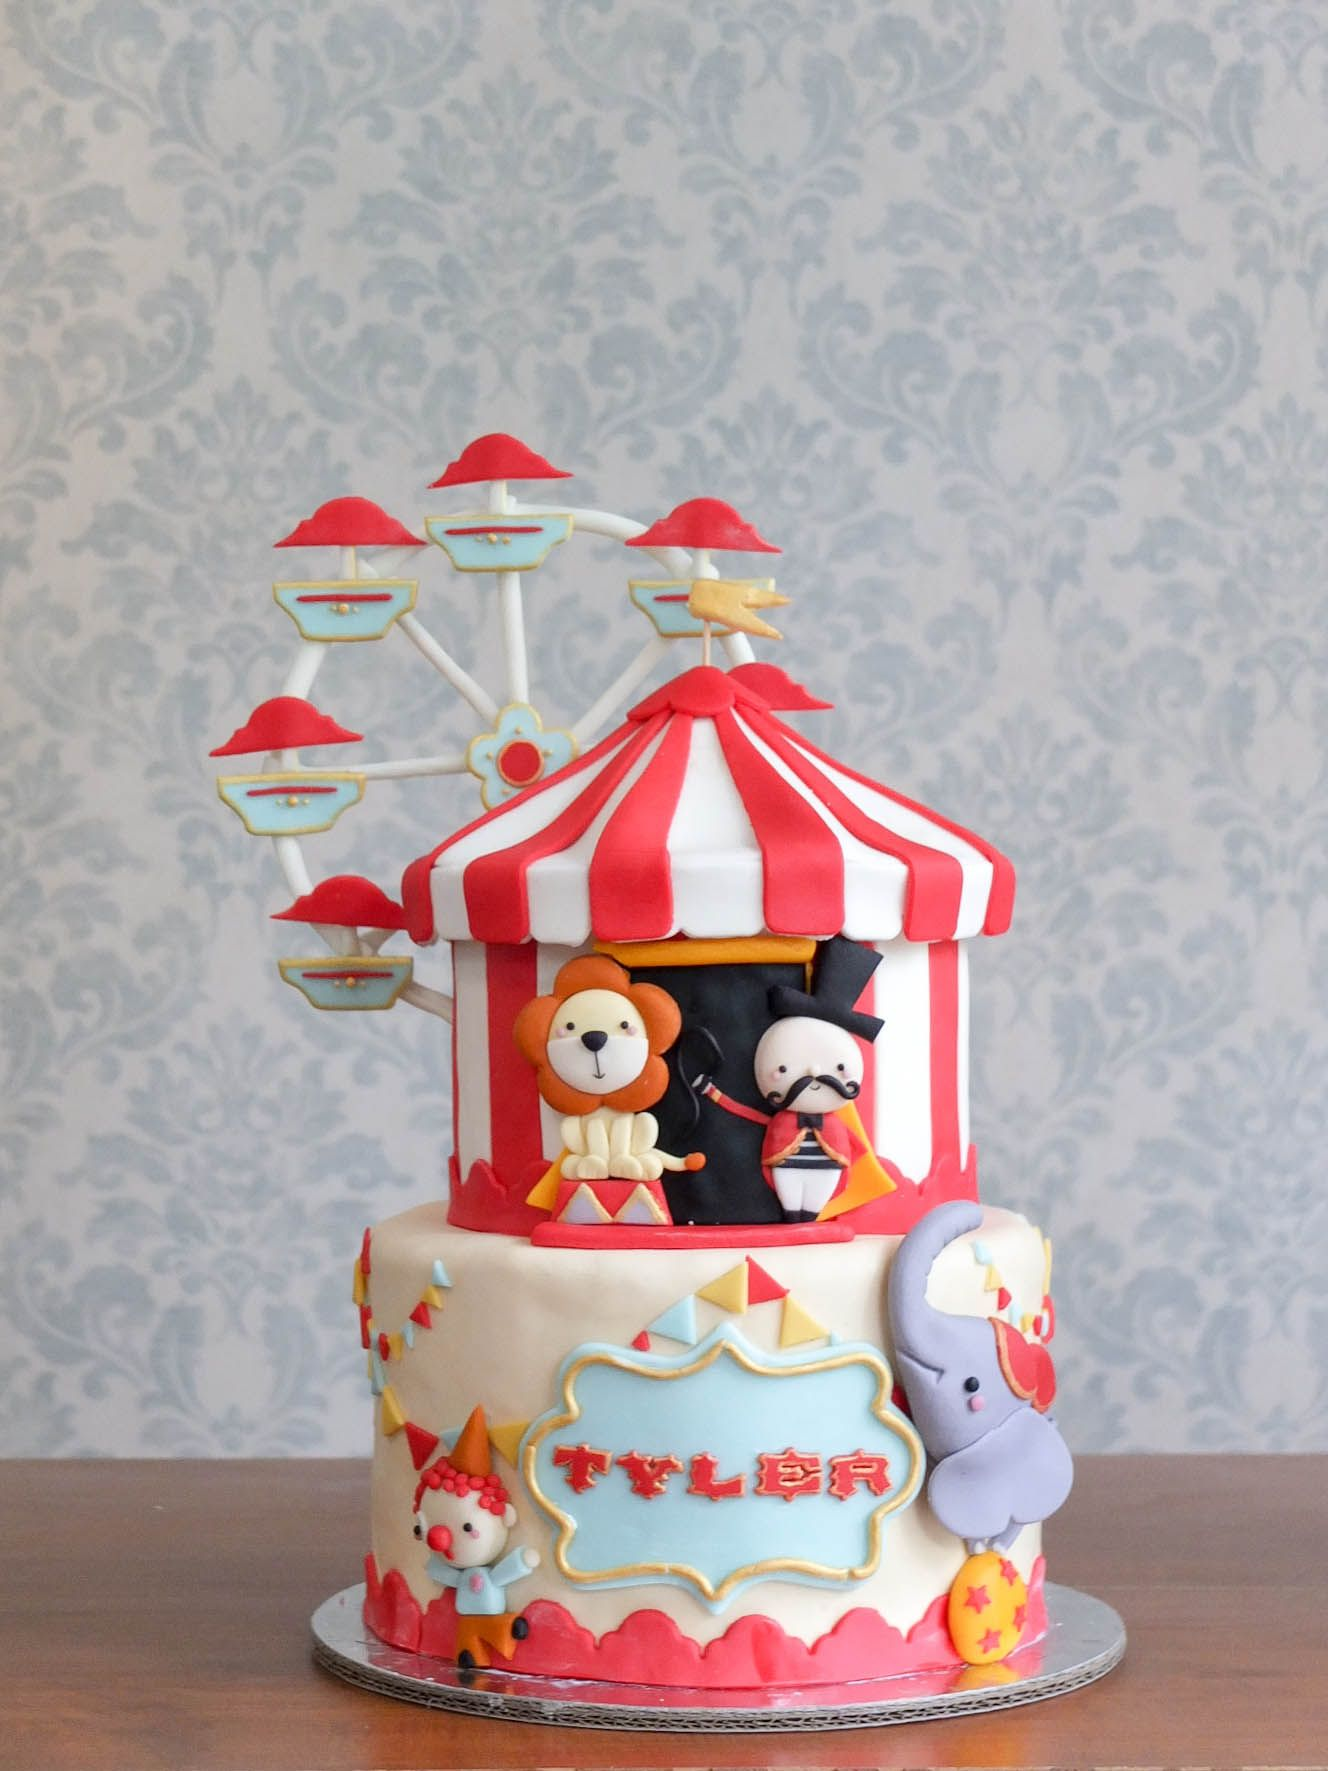 First Carnival Cake Ive Done It Was An Absolute Challenge To Make